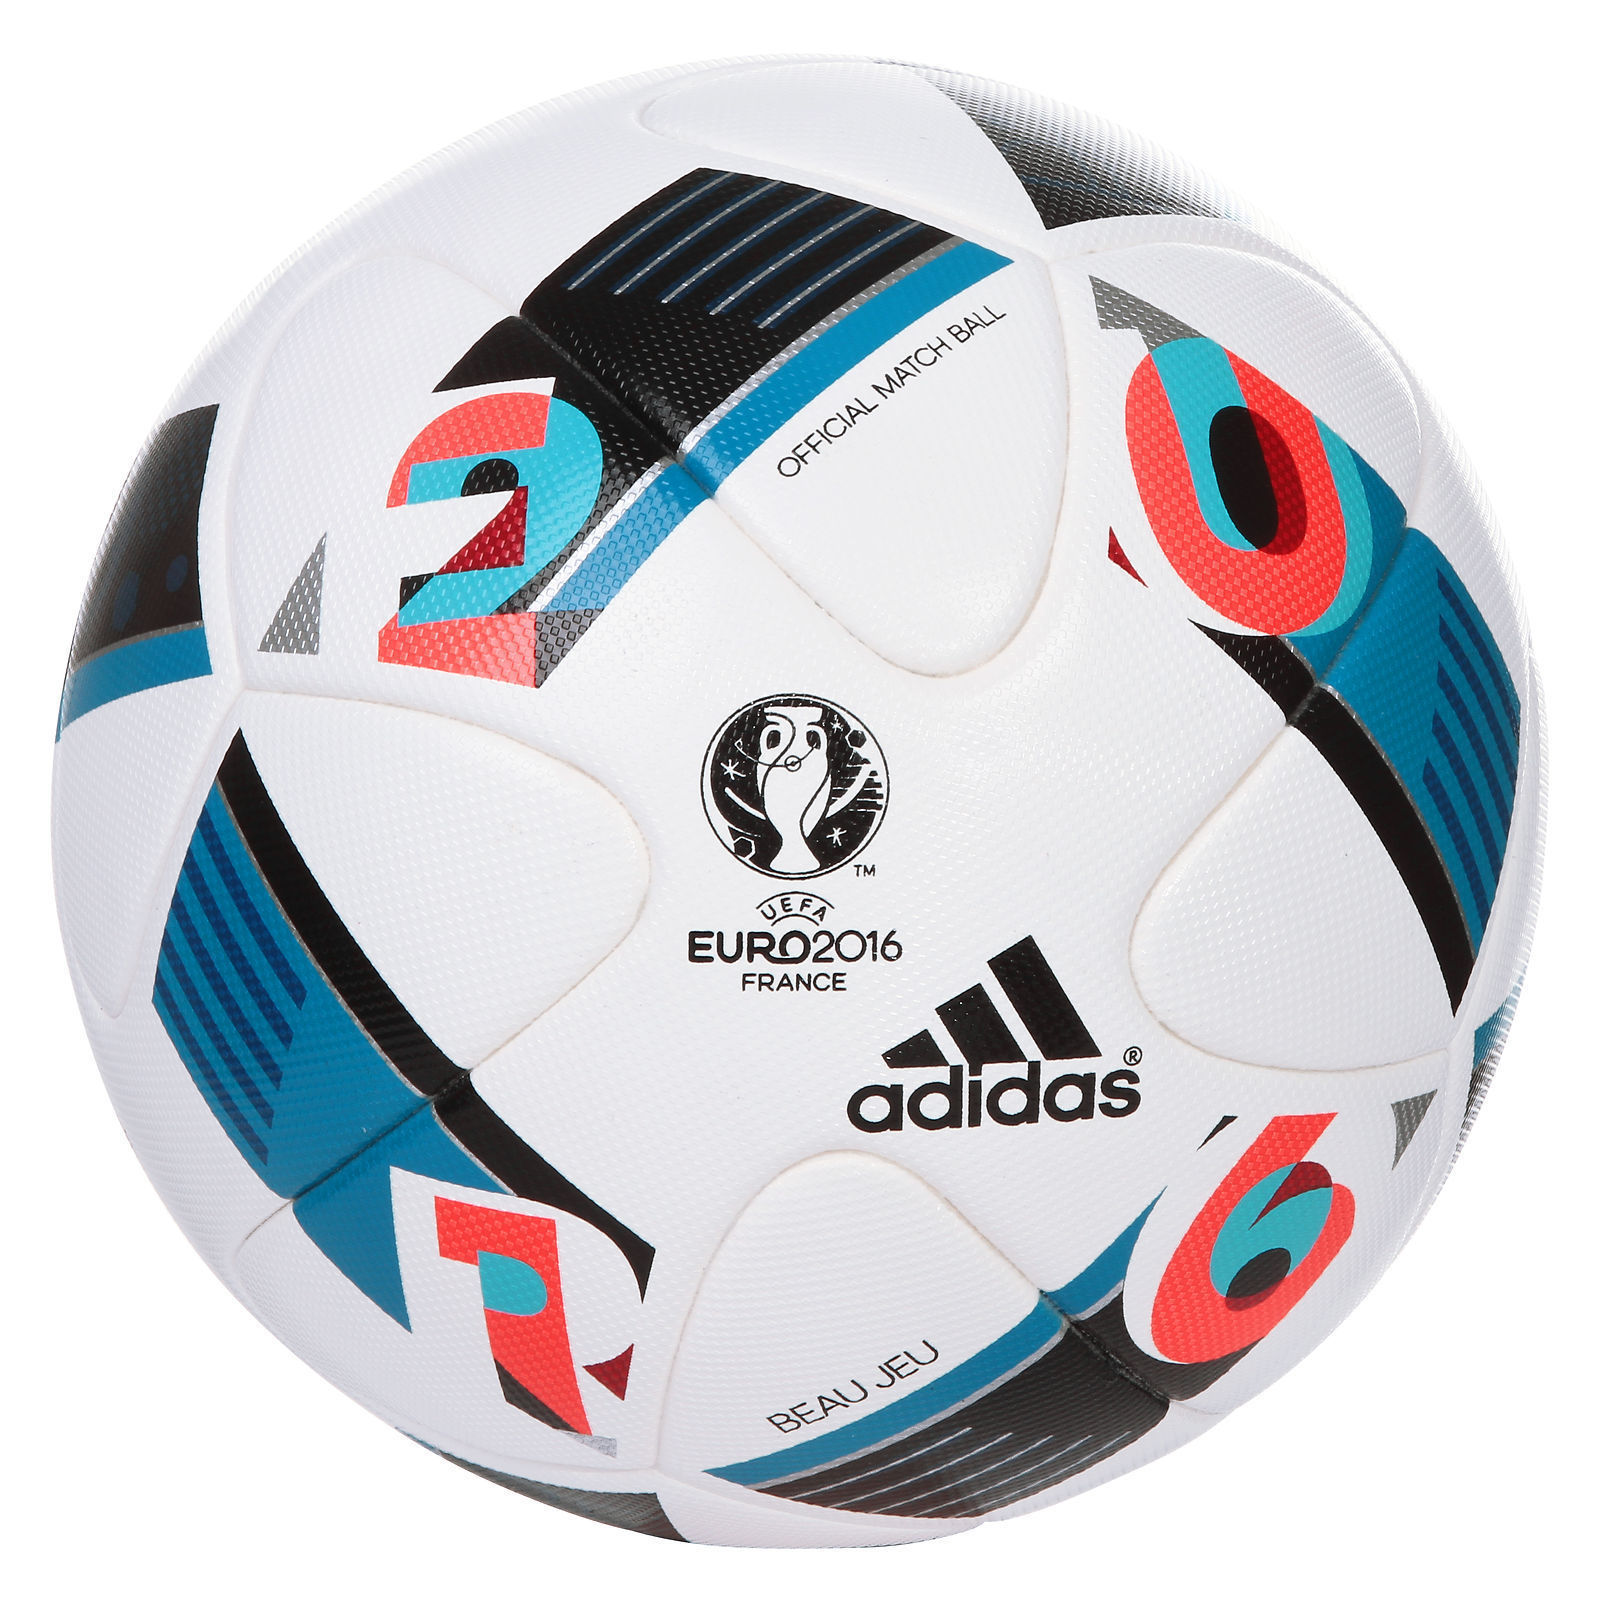 1600x1600 Adidas Euro16 2016 Official Match Soccer Ball Ac5415 Retail Ebay